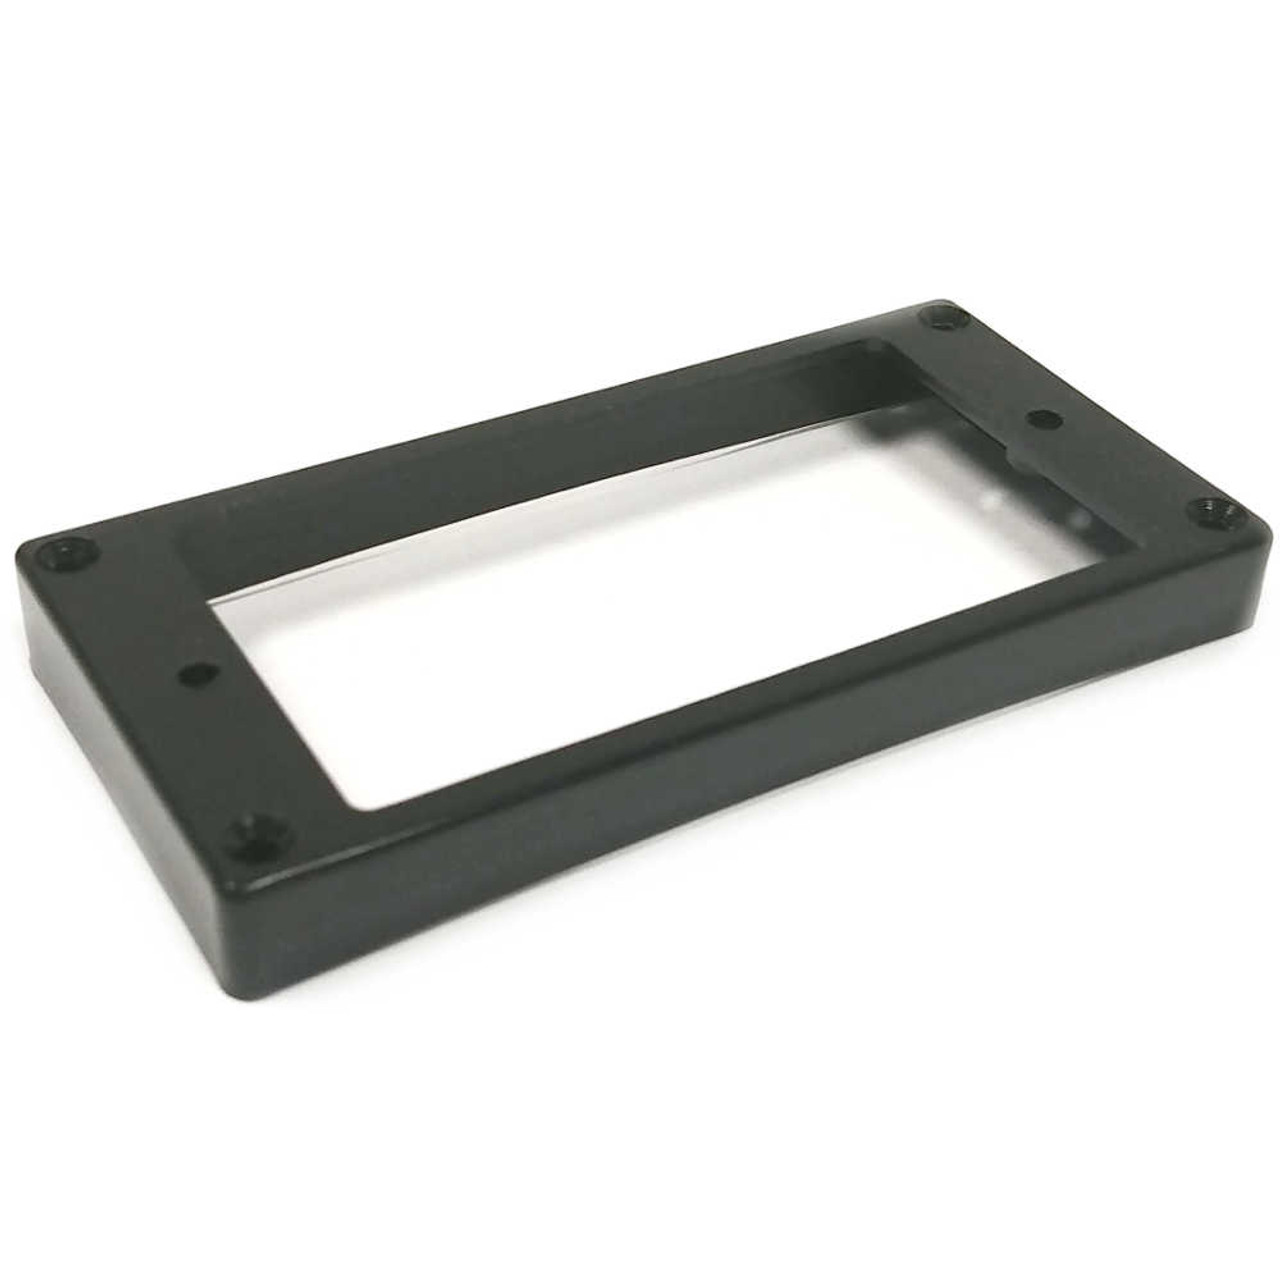 Humbucker Mounting Ring - Curved/Slanted Tall - Black